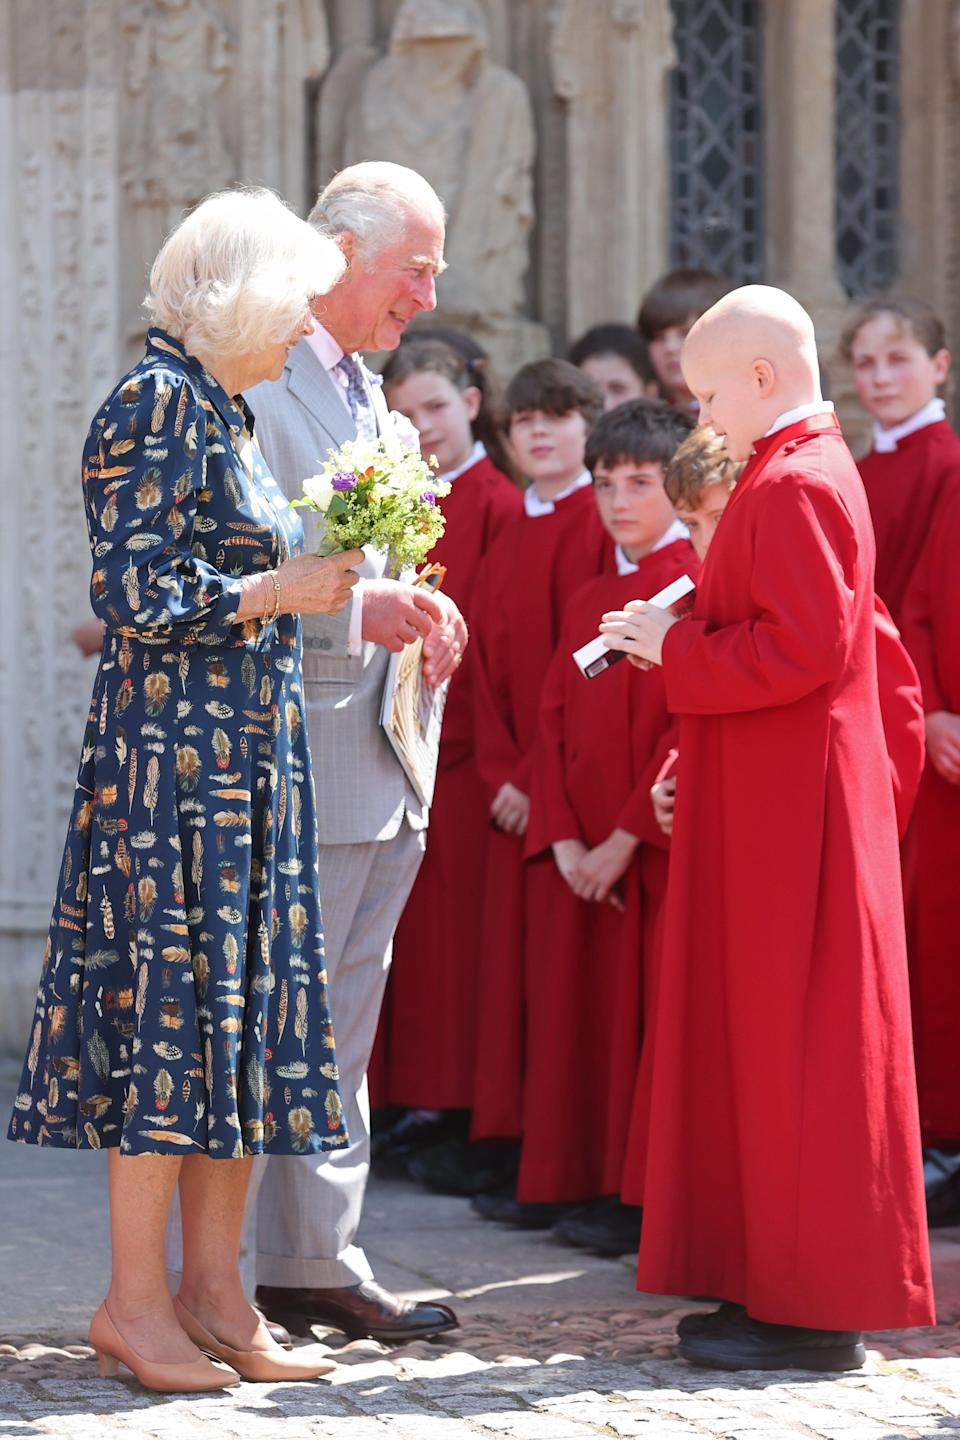 The Prince of Wales and Duchess of Cornwall went mask-free during their visit (Chris Jackson/PA) (PA Wire)